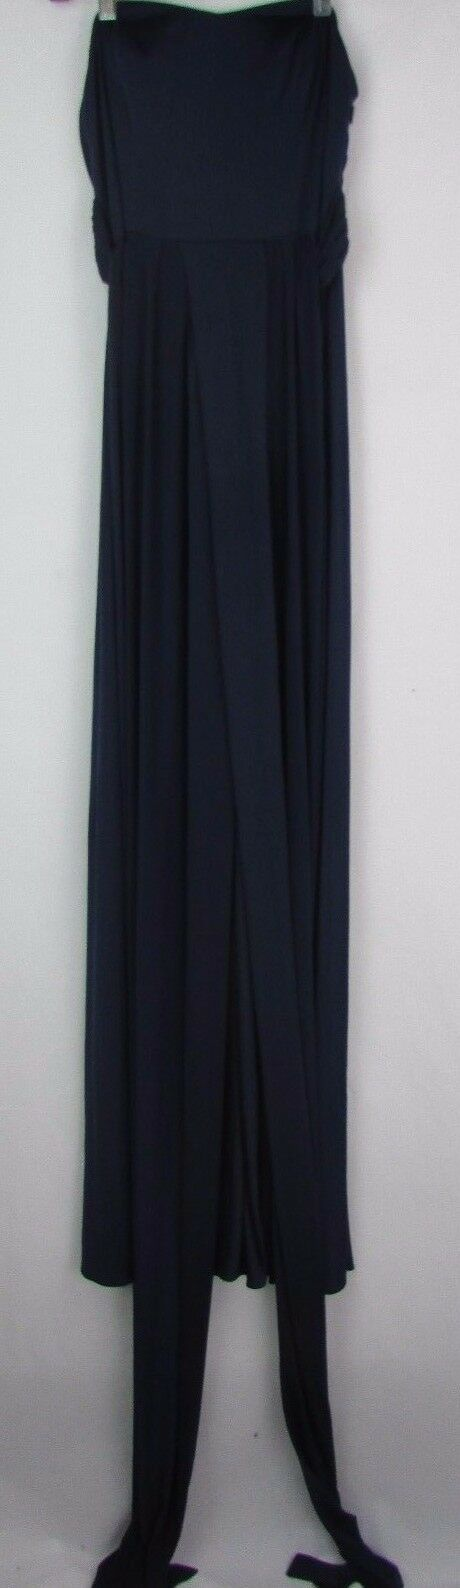 Adrianna Papell New Women's Navy Congreenible Jersey Gown Dress Size 0